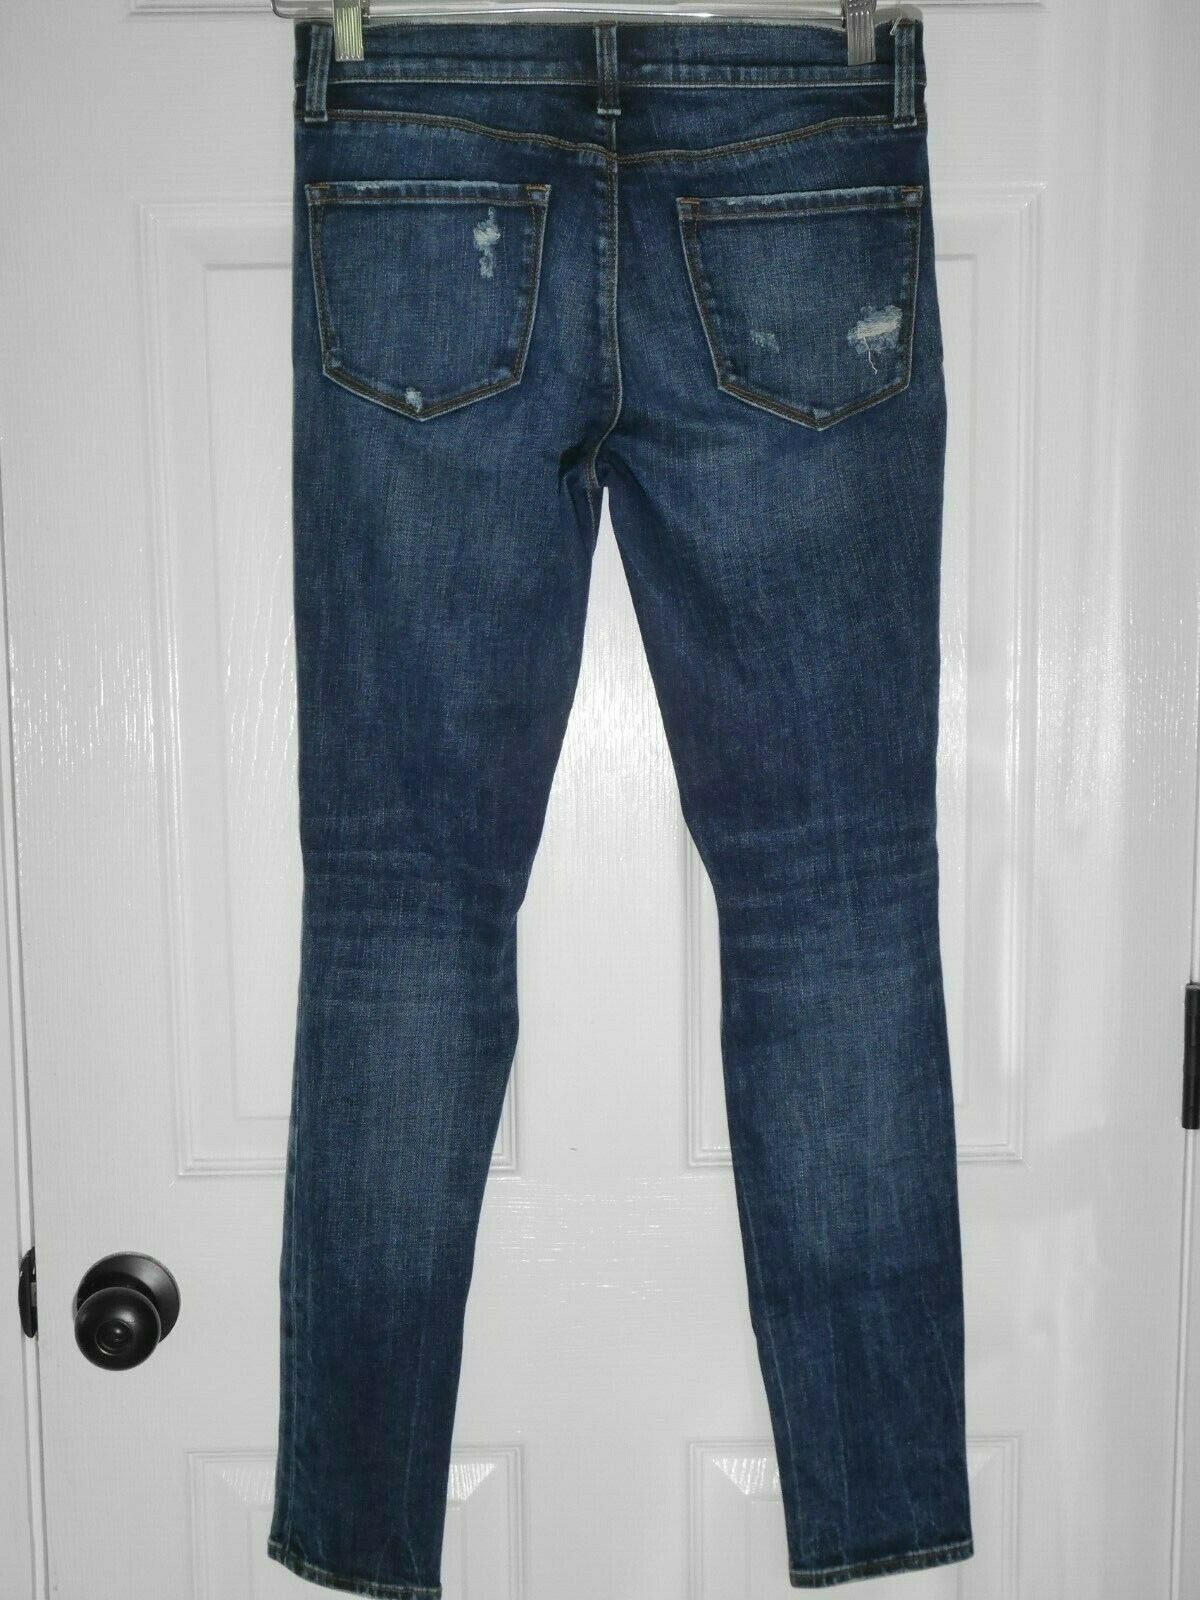 $228 J Brand - 620 Mid-Rise Super Skinny in Dark Erosion (Destroyed) - Size 26 image 3